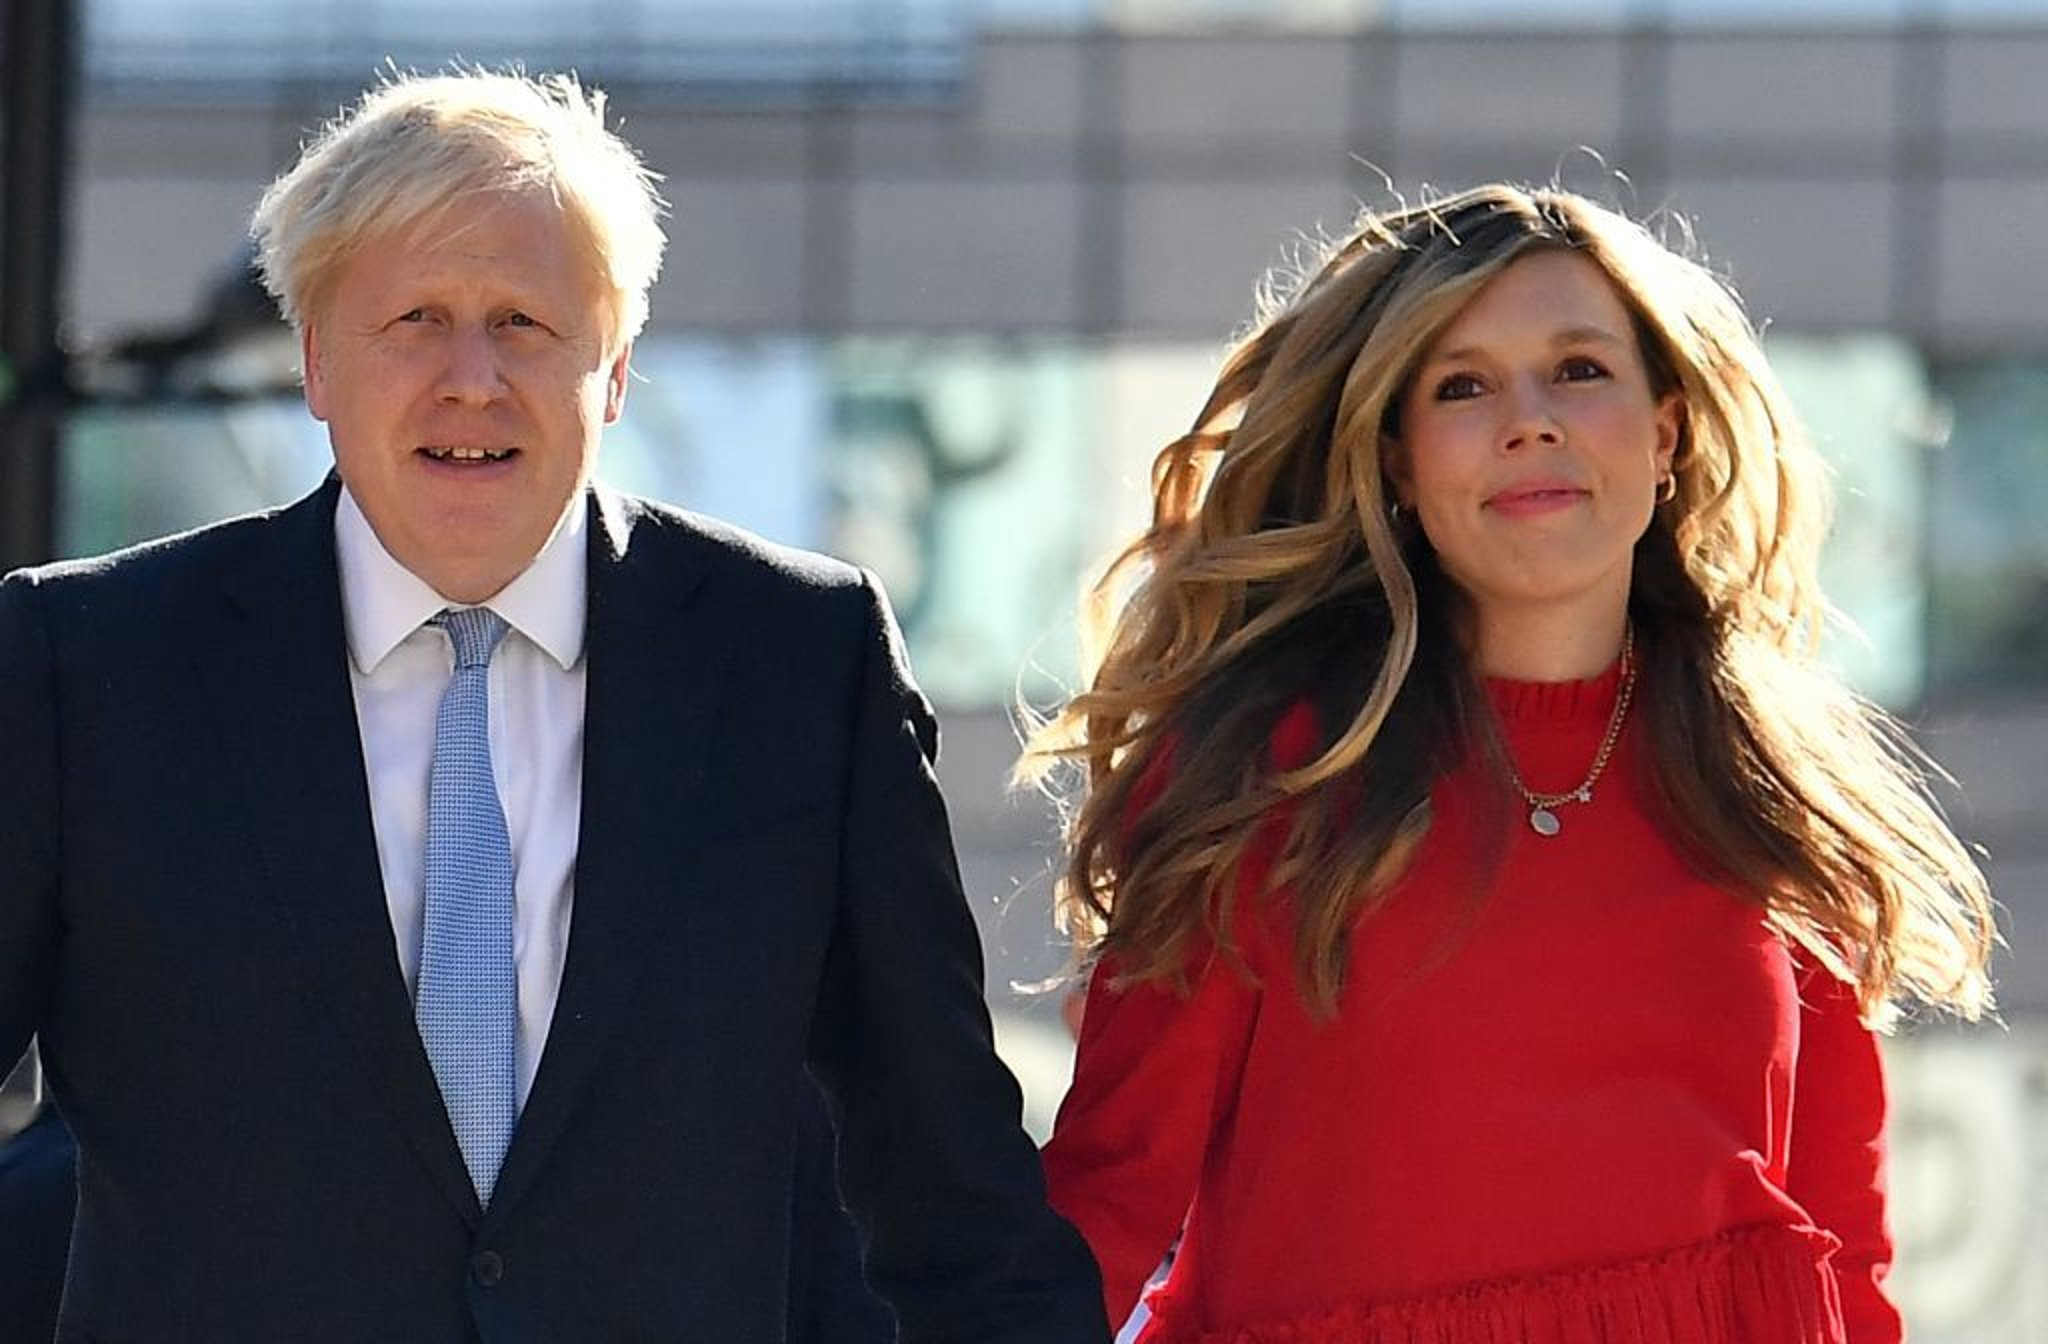 PM and Carrie Johnson 'broke Christmas lockdown rules' to have friend over